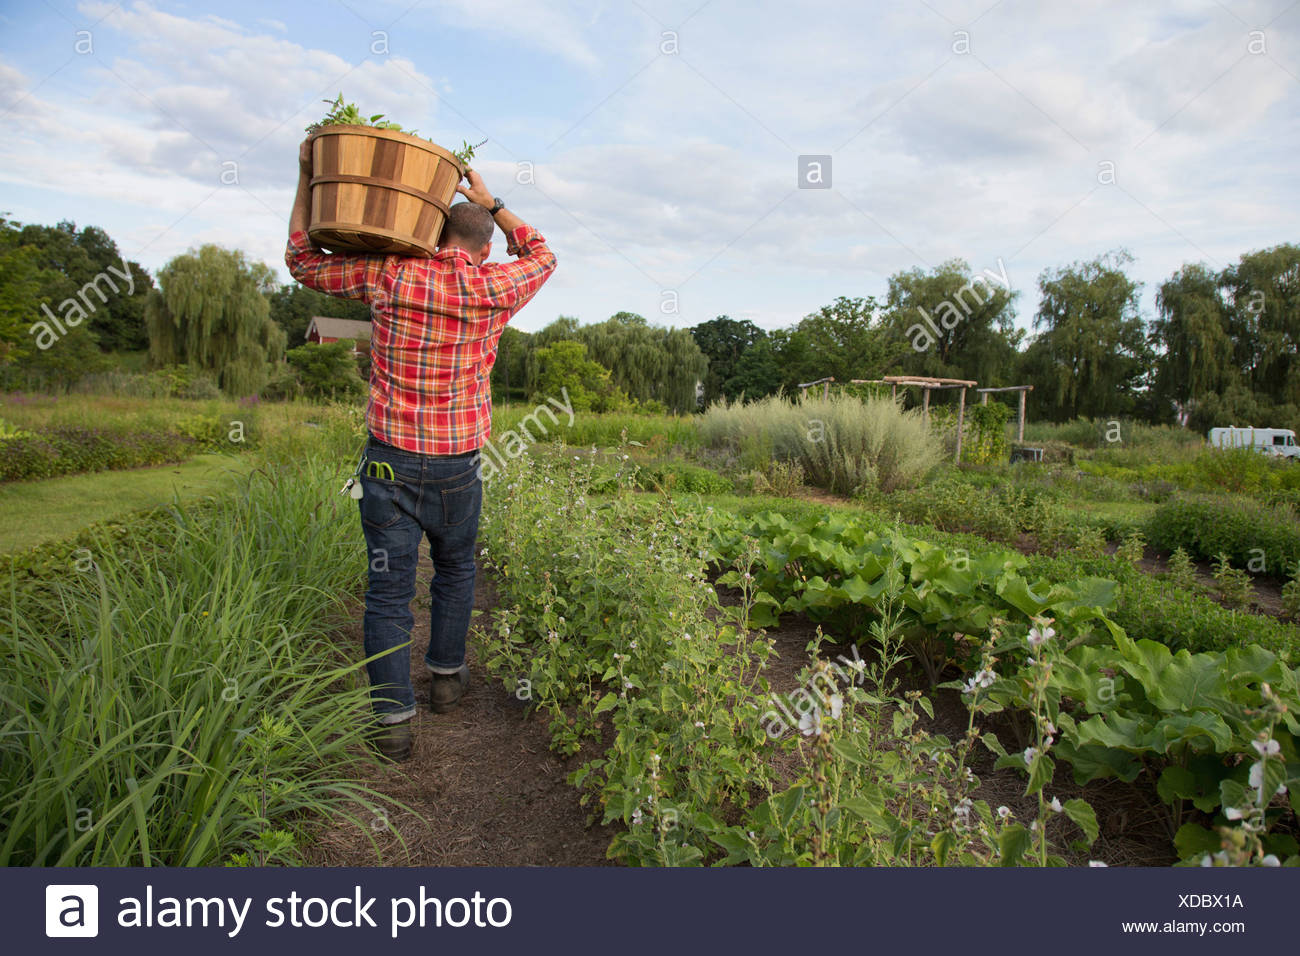 Man carrying basket of leaves on herb farm Photo Stock